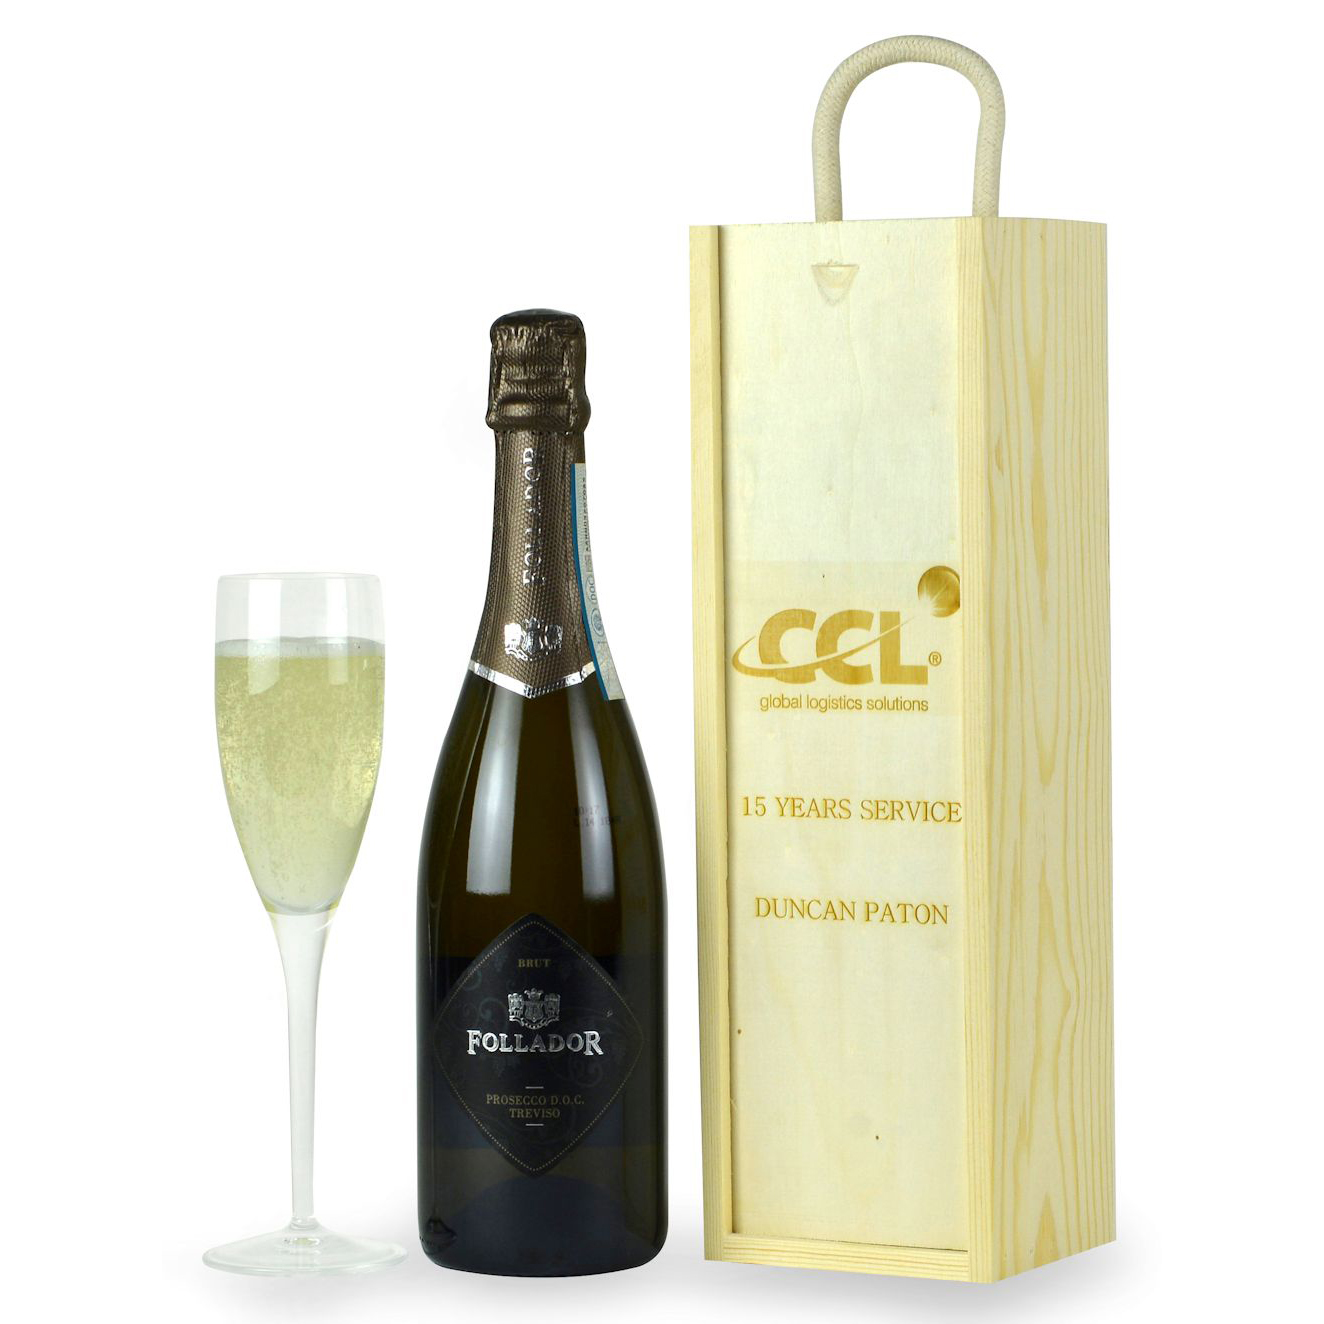 Express Prosecco Gifts